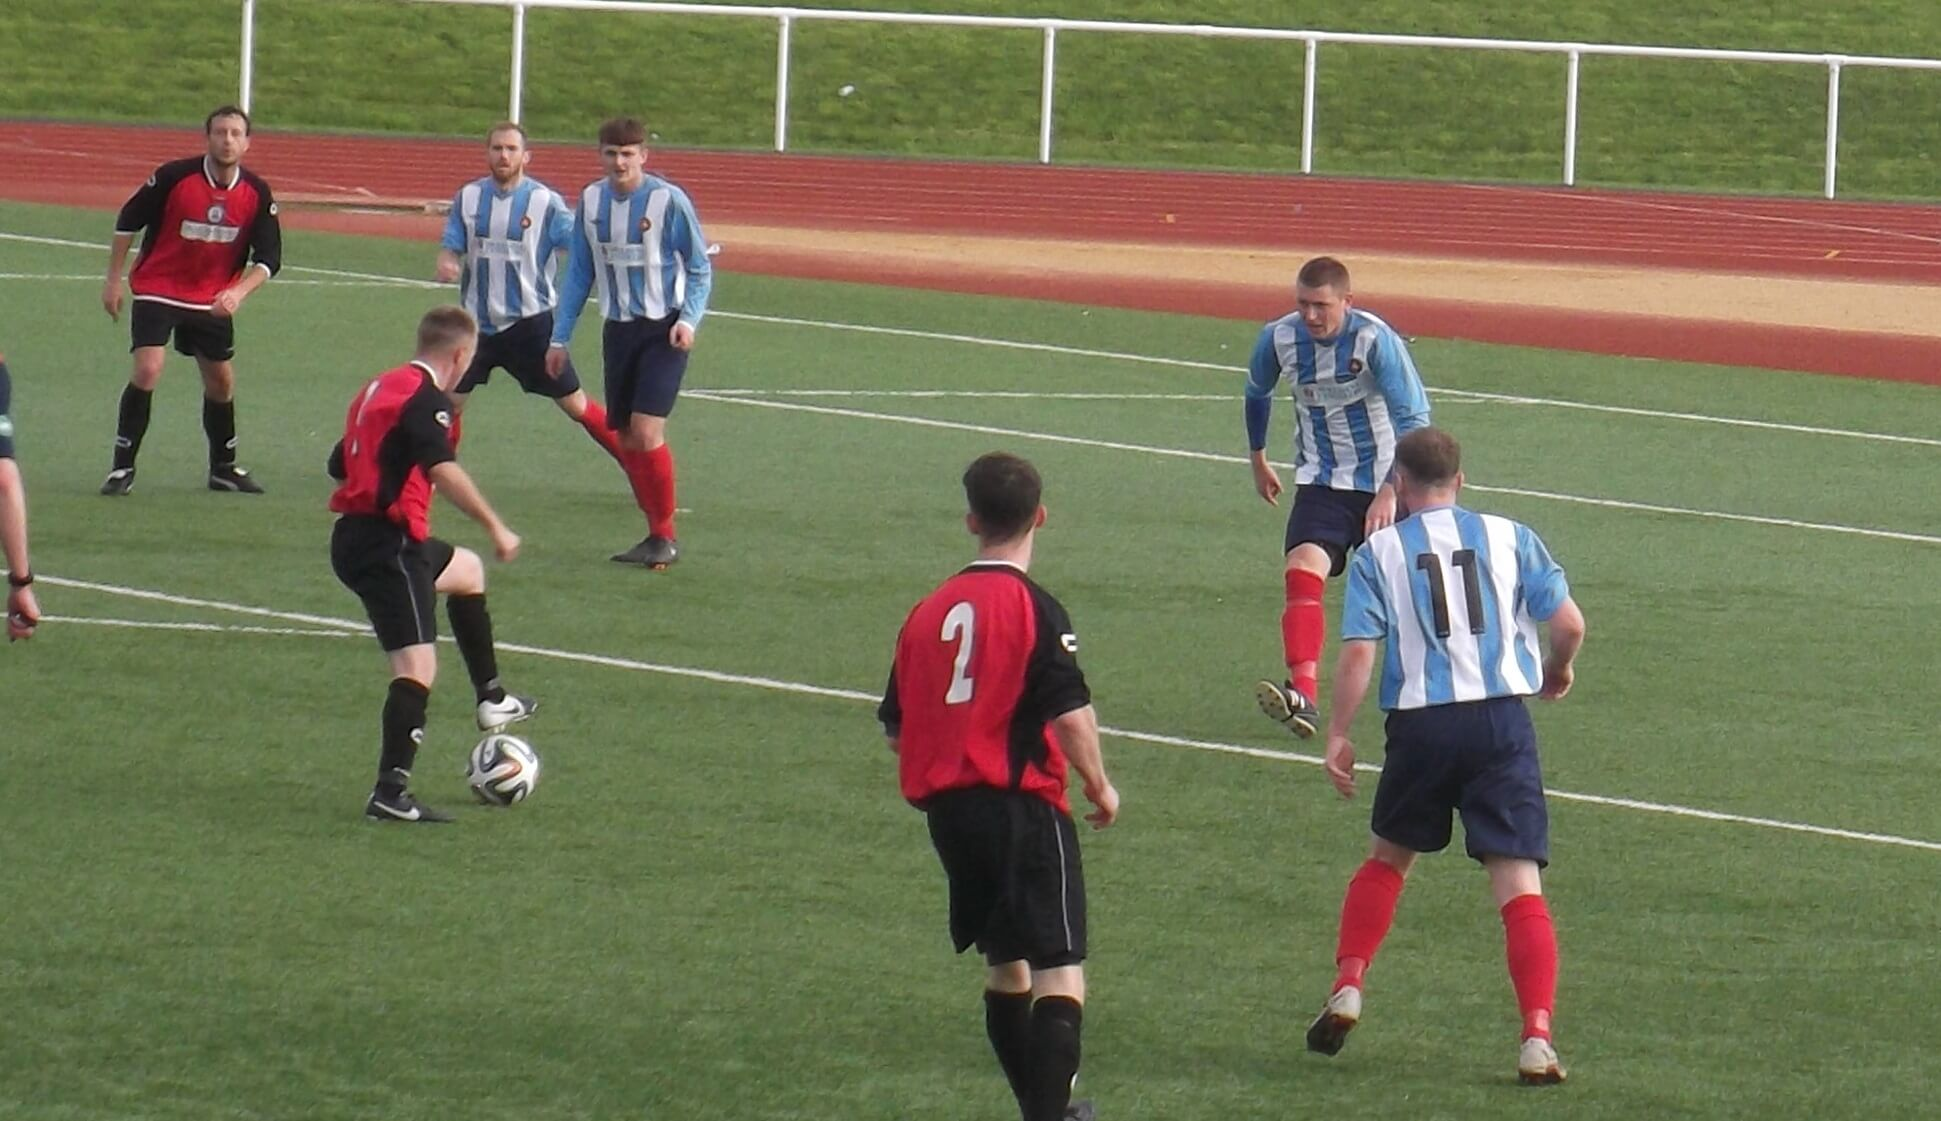 Carluke's Watt lines up shot as Schoneville gets out to block